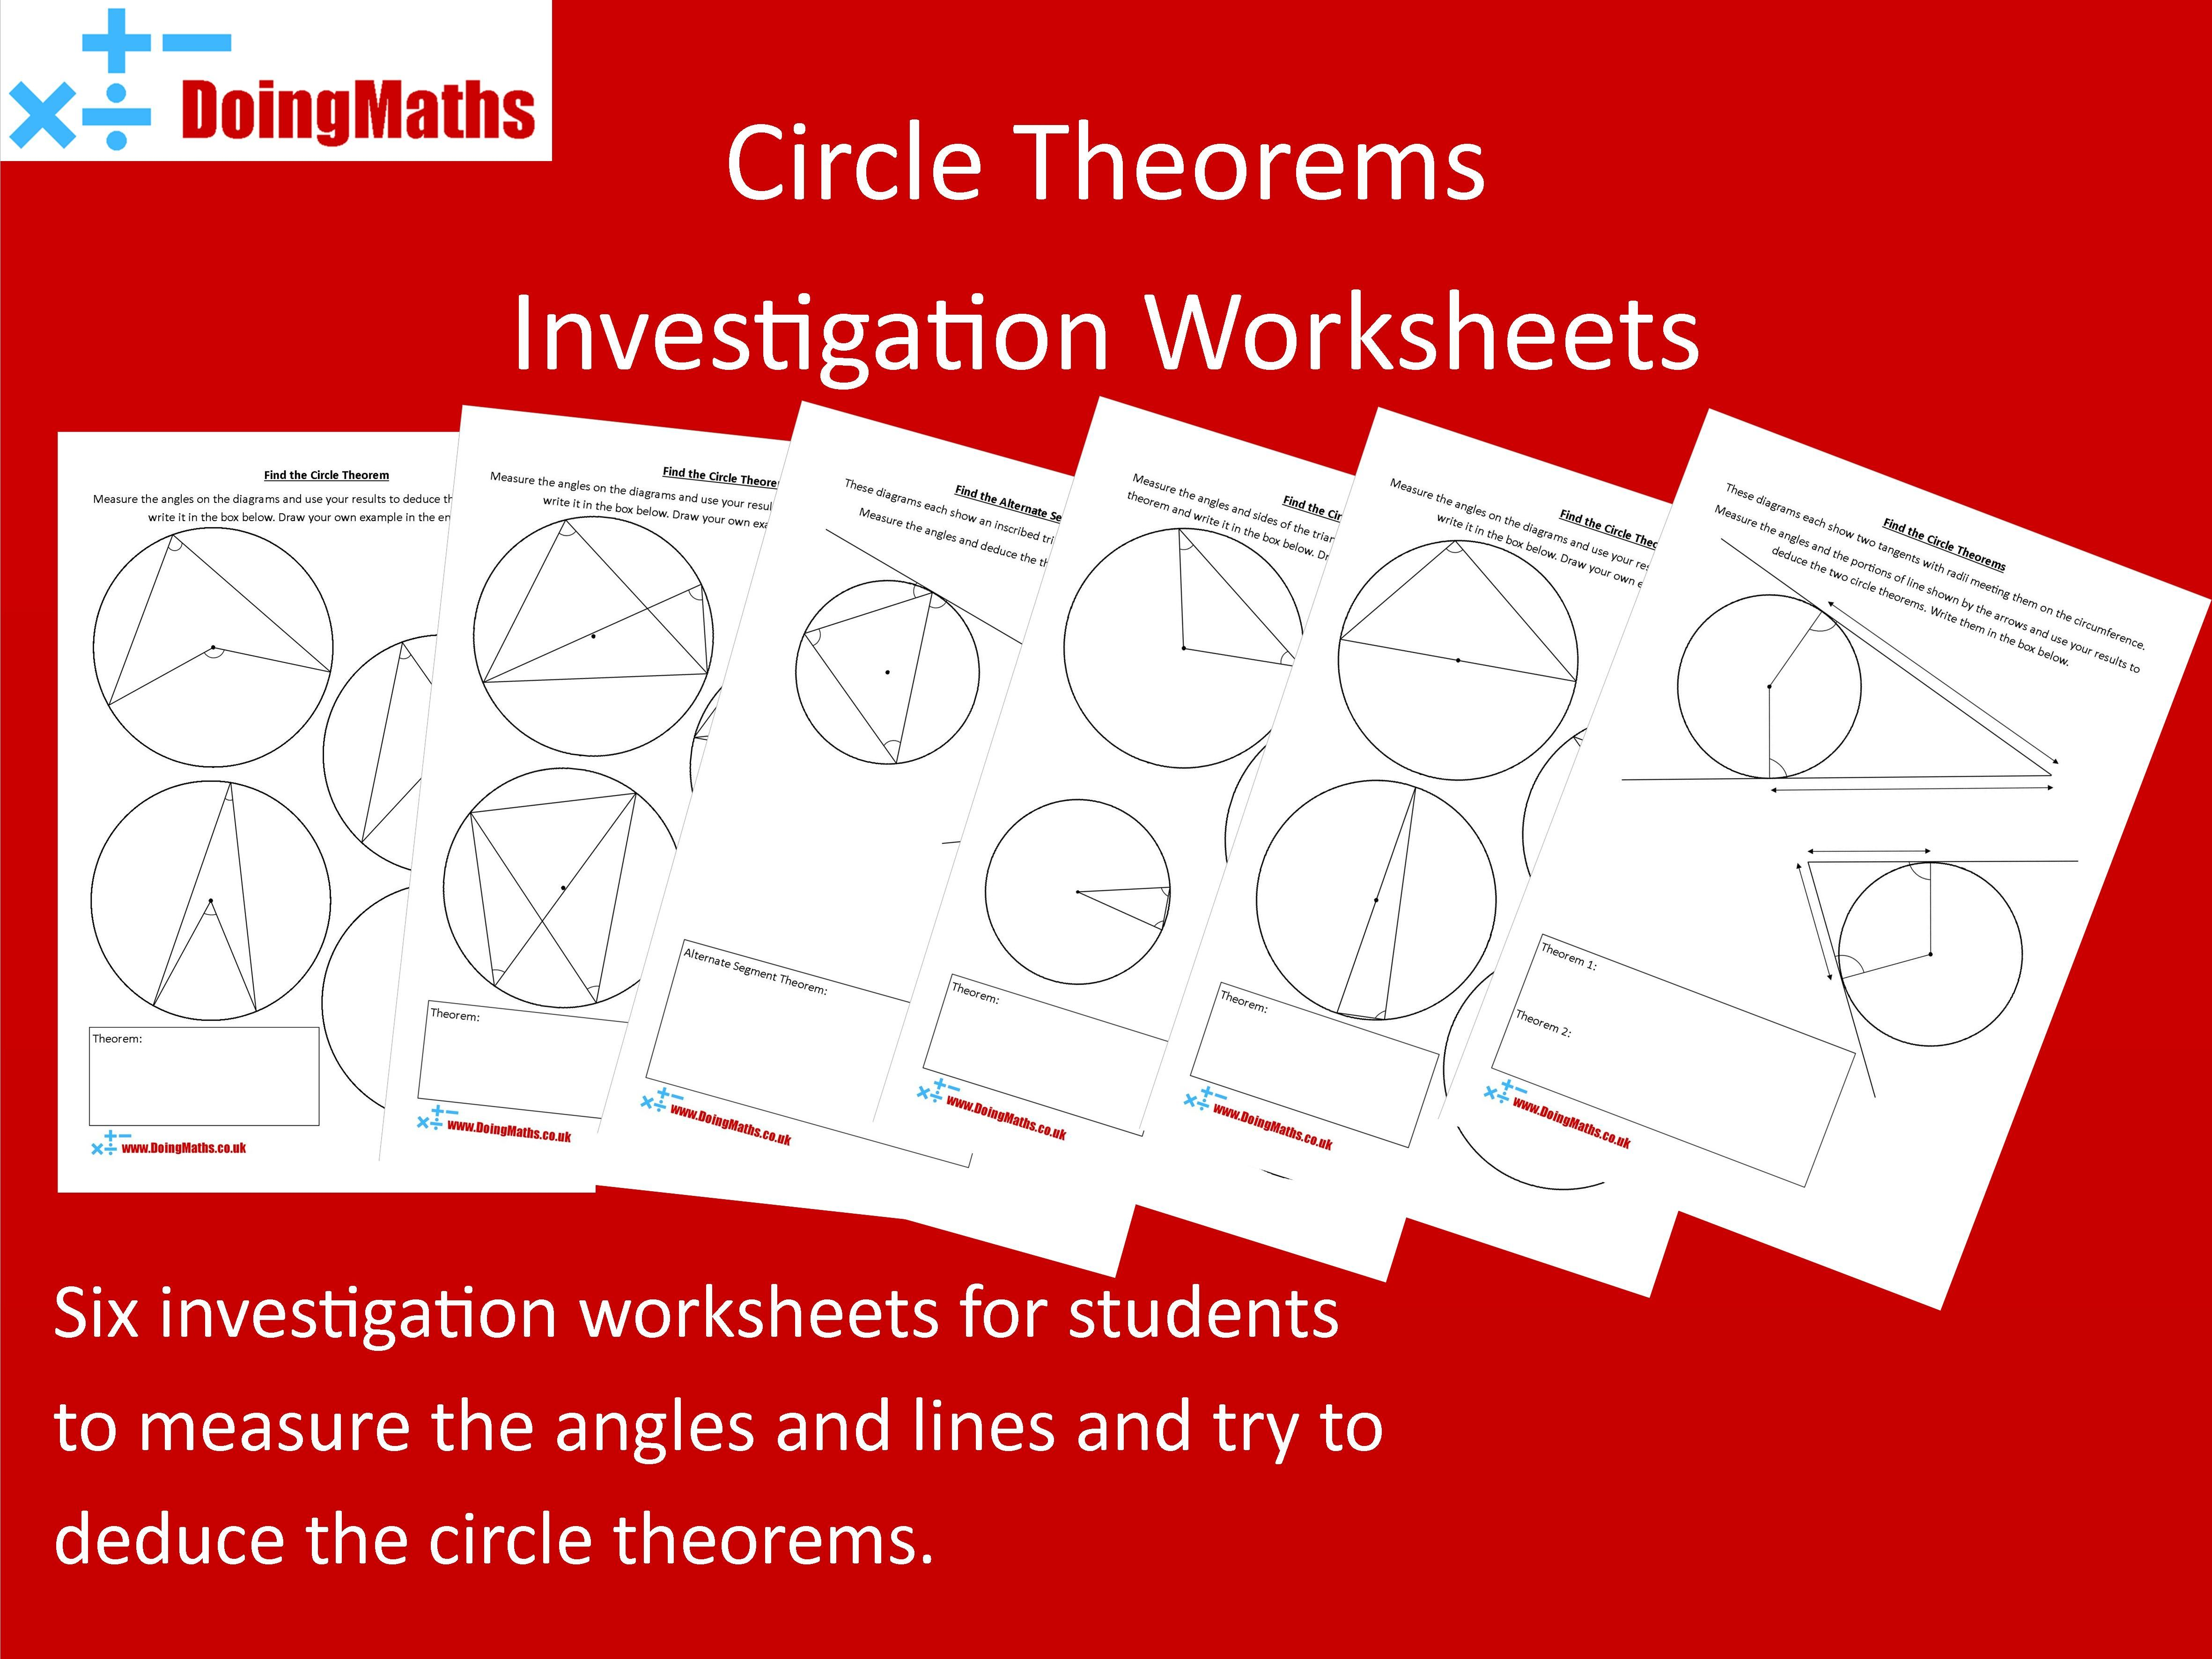 Circle Theorems Investigation Worksheets